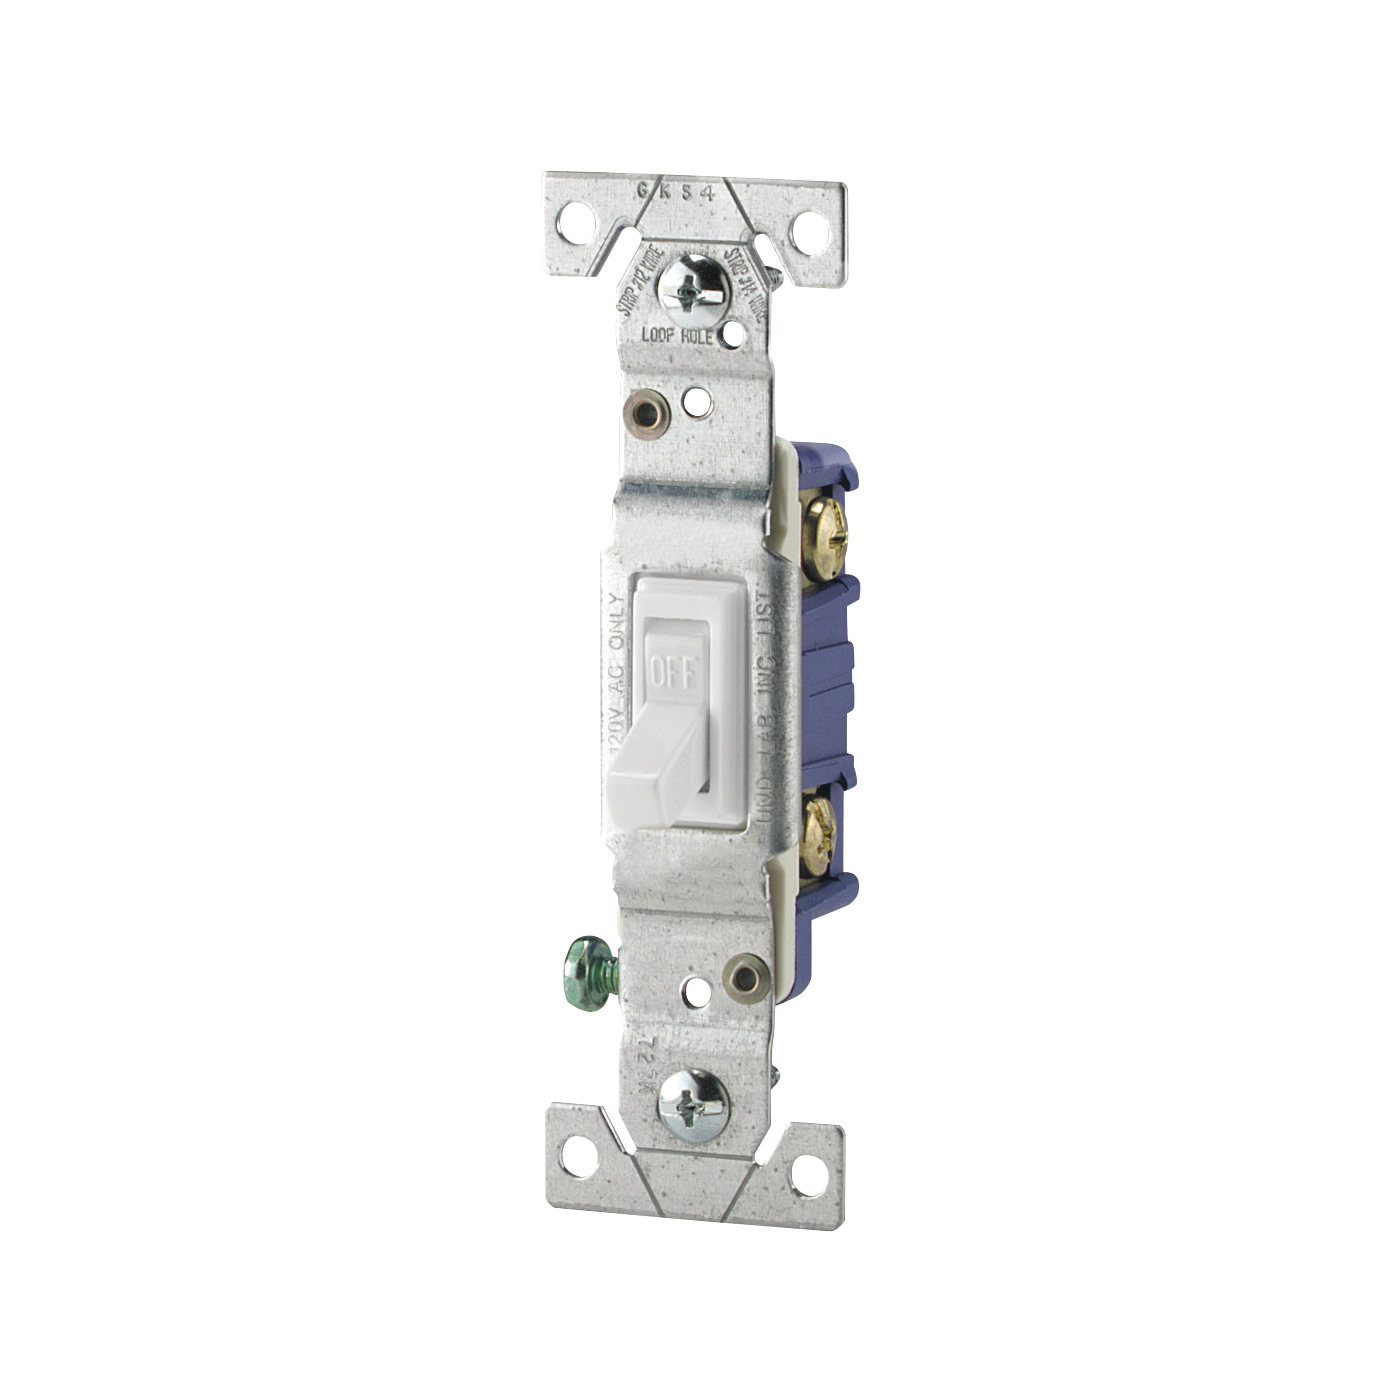 Picture of Eaton Wiring Devices 1301-7W Toggle Switch, 15 A, 120 V, Polycarbonate Housing Material, White